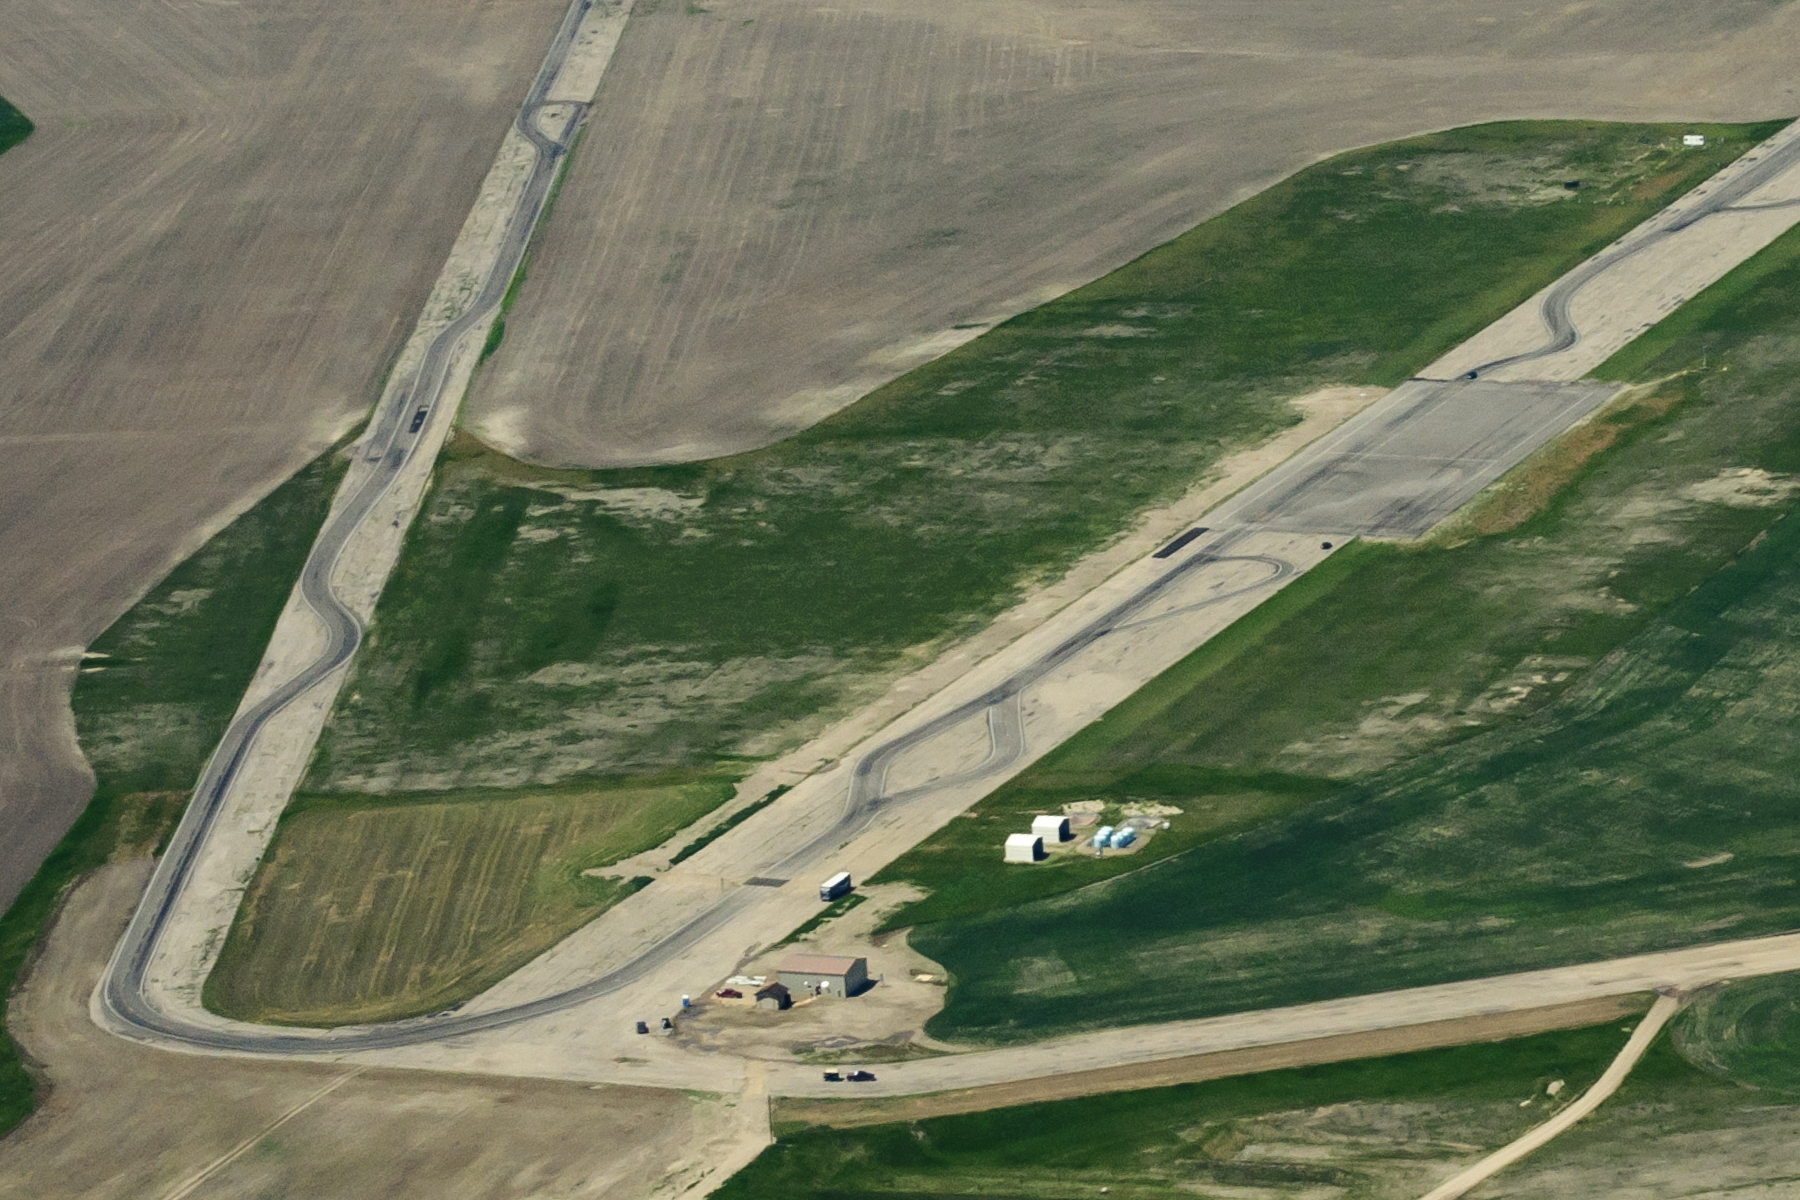 Aerial view of WTI's Transcend test track and storage facilities.